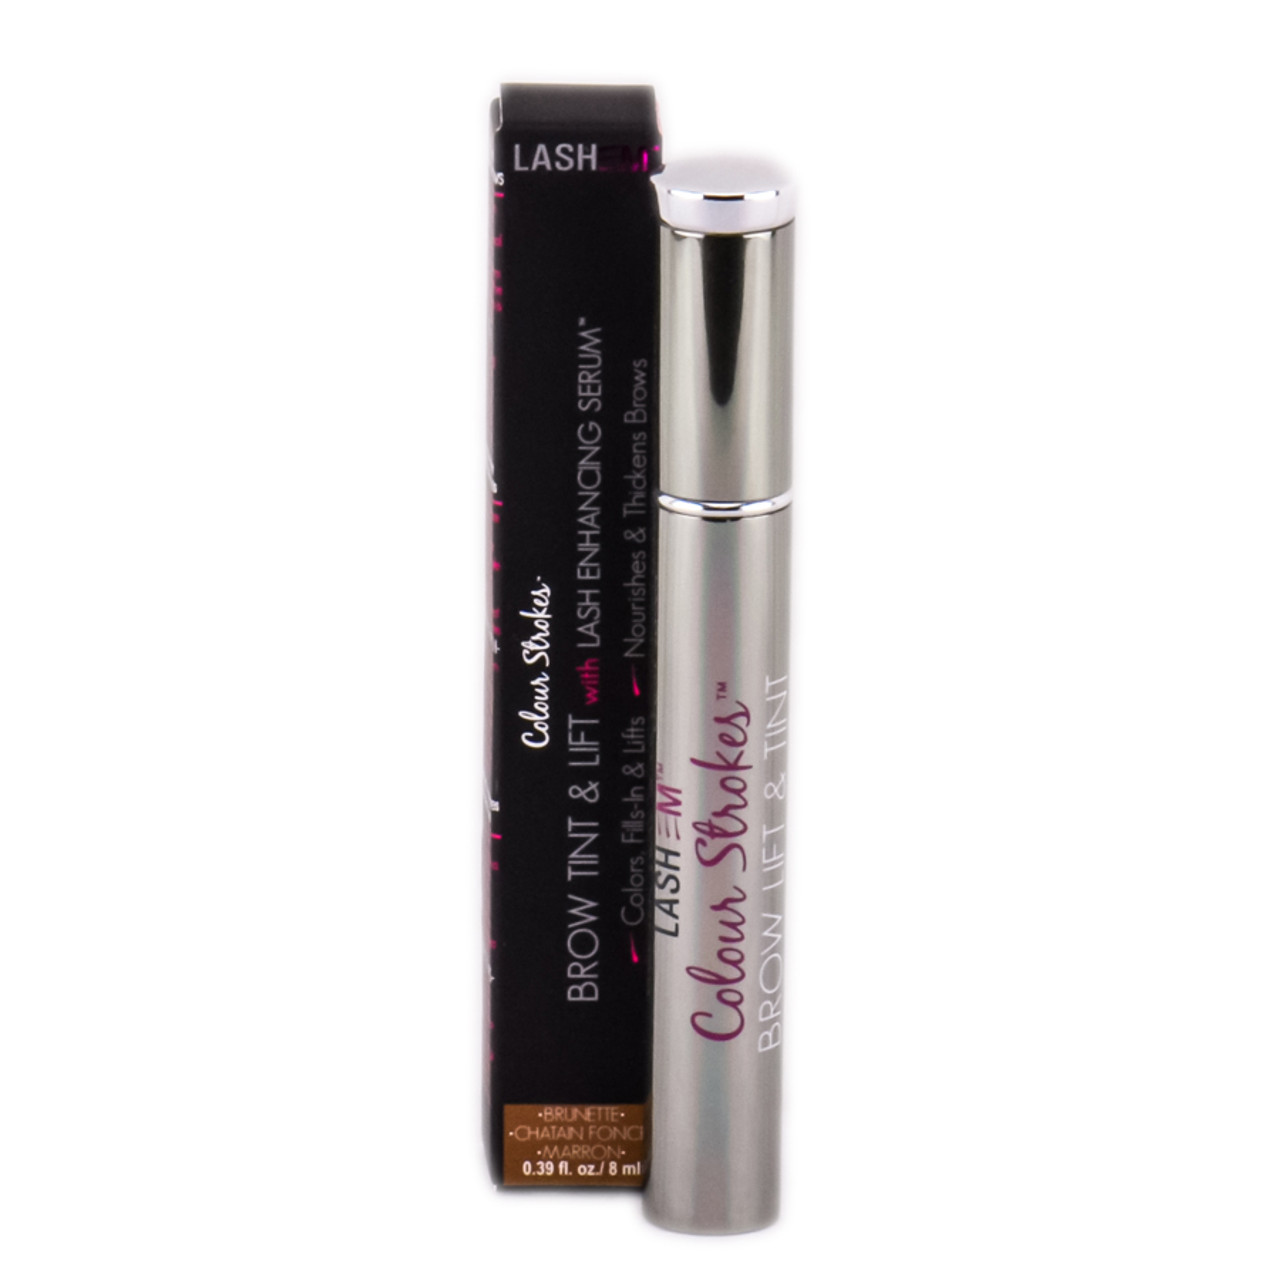 Lashem Color Stroke Brow Tint And Lift Sleekshop Formerly